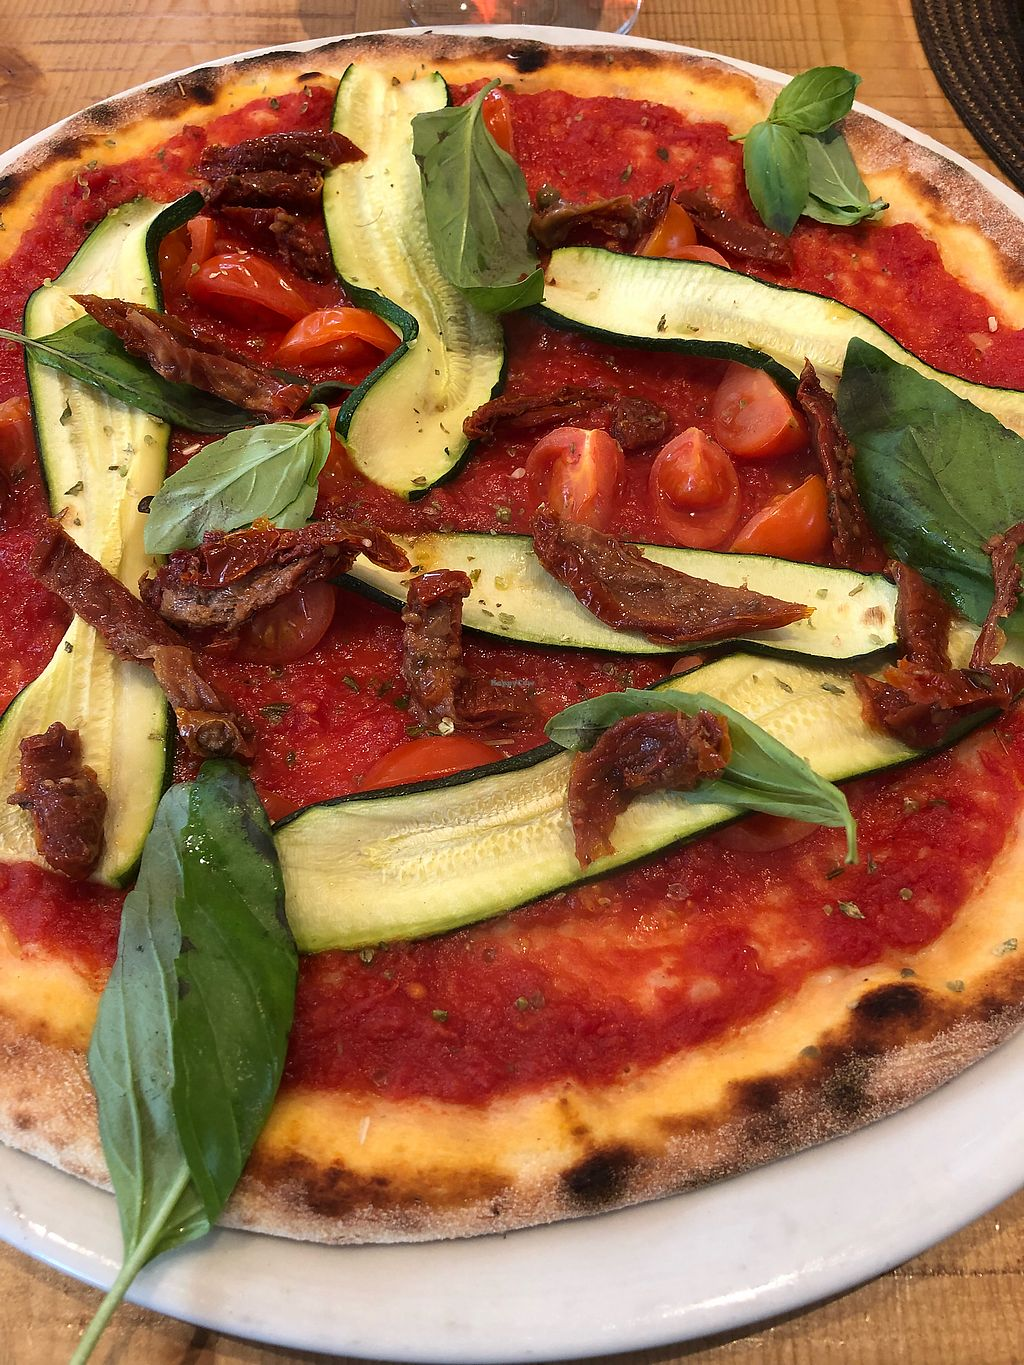 """Photo of Pizzeria Bistro Mediterraneo  by <a href=""""/members/profile/siegburg03"""">siegburg03</a> <br/>Pizza Vegano  <br/> March 31, 2018  - <a href='/contact/abuse/image/98676/378756'>Report</a>"""